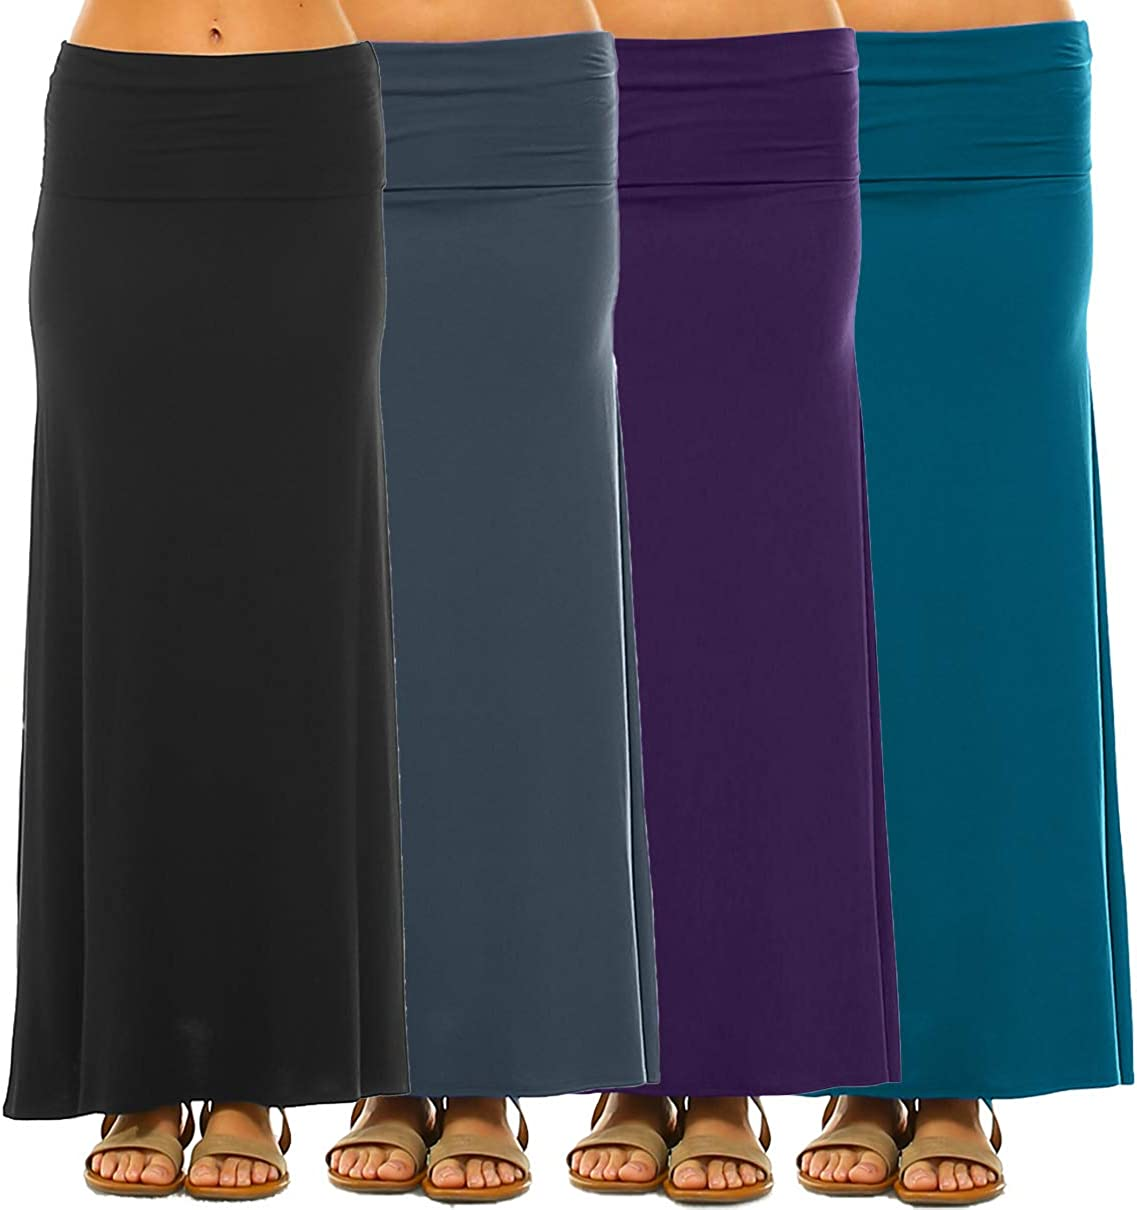 Made in The USA Isaac Liev Womens 4-Pack Trendy Rayon Span Fold Over Maxi Skirt